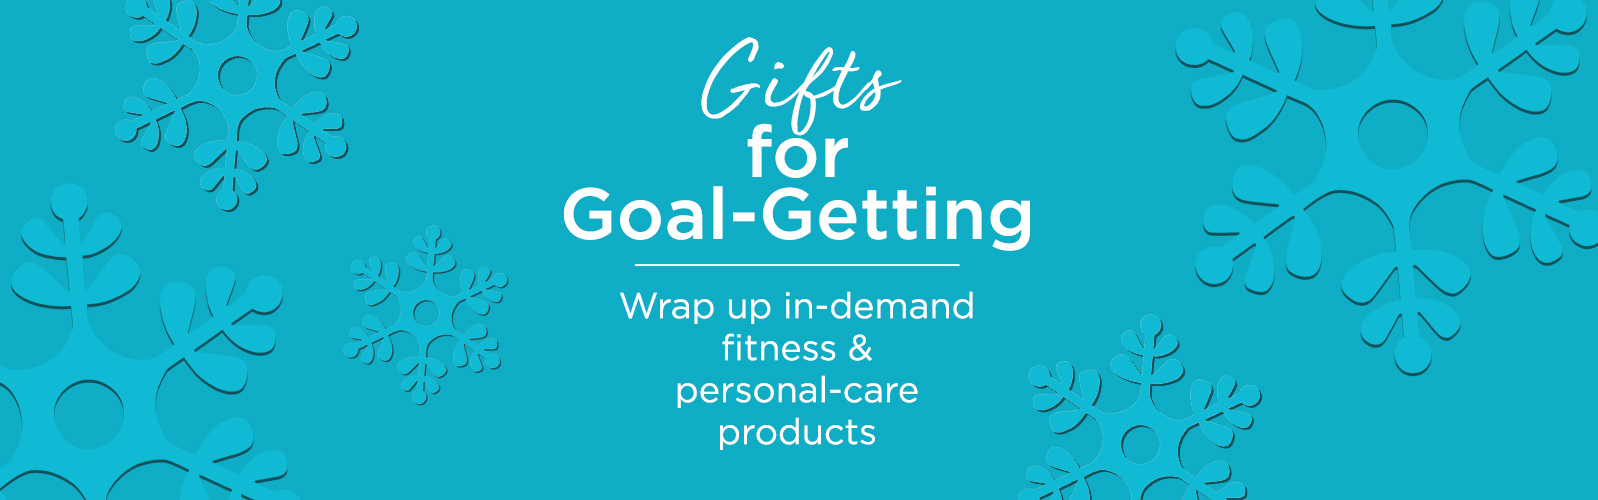 Gifts for Goal-Getting - Wrap up in-demand fitness & personal-care products